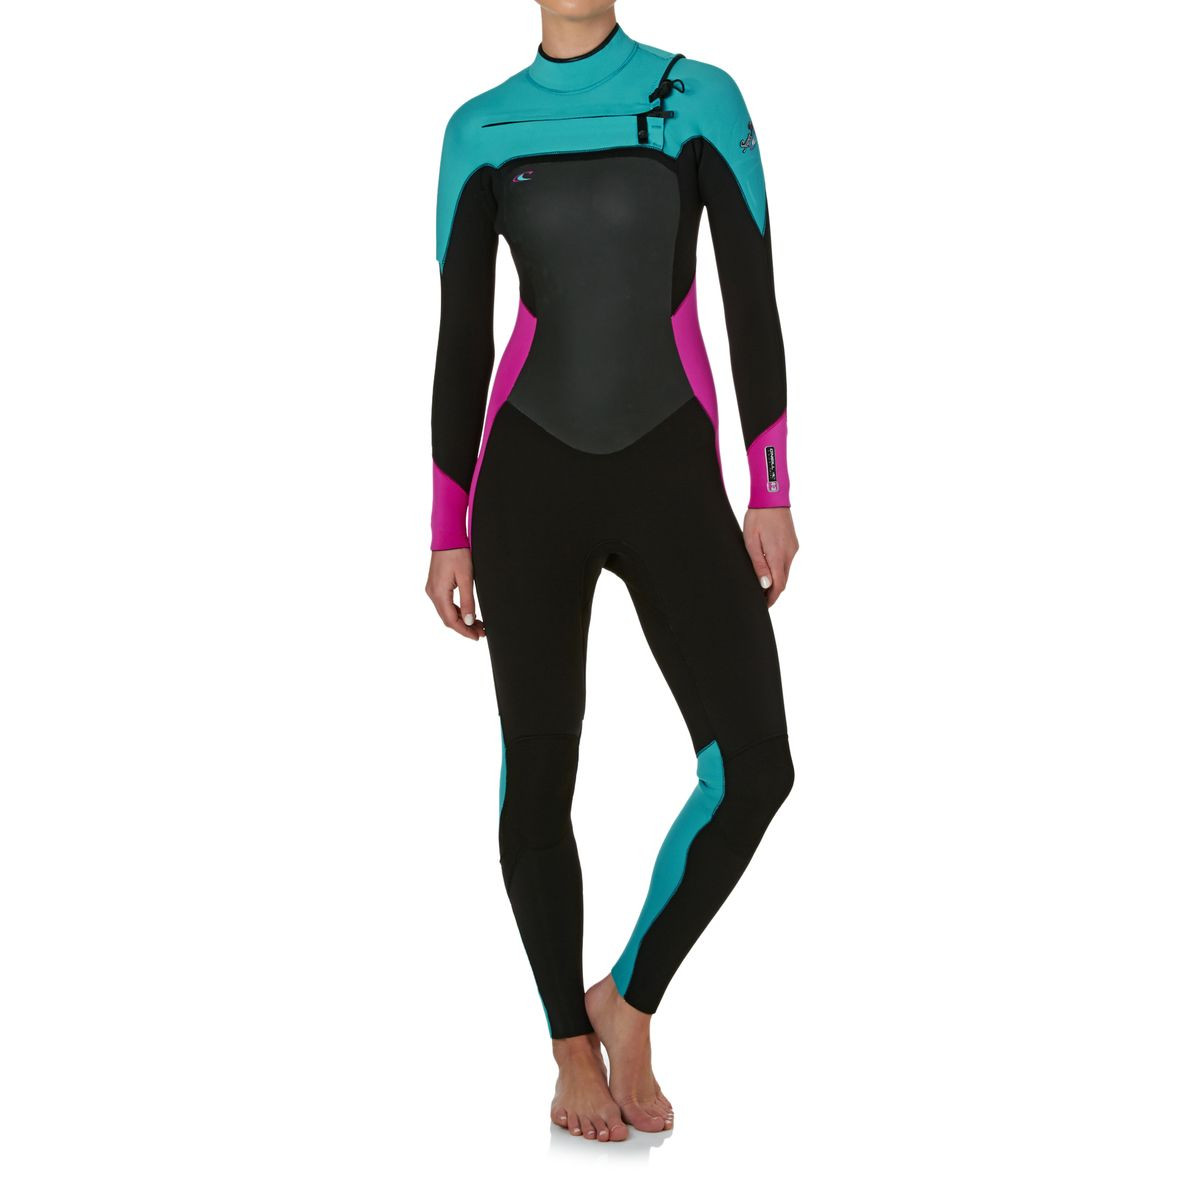 O'Neill Womens Superfreak 4/3mm Chest Zip Wetsuit - Black/ Berry/ Light Aqua